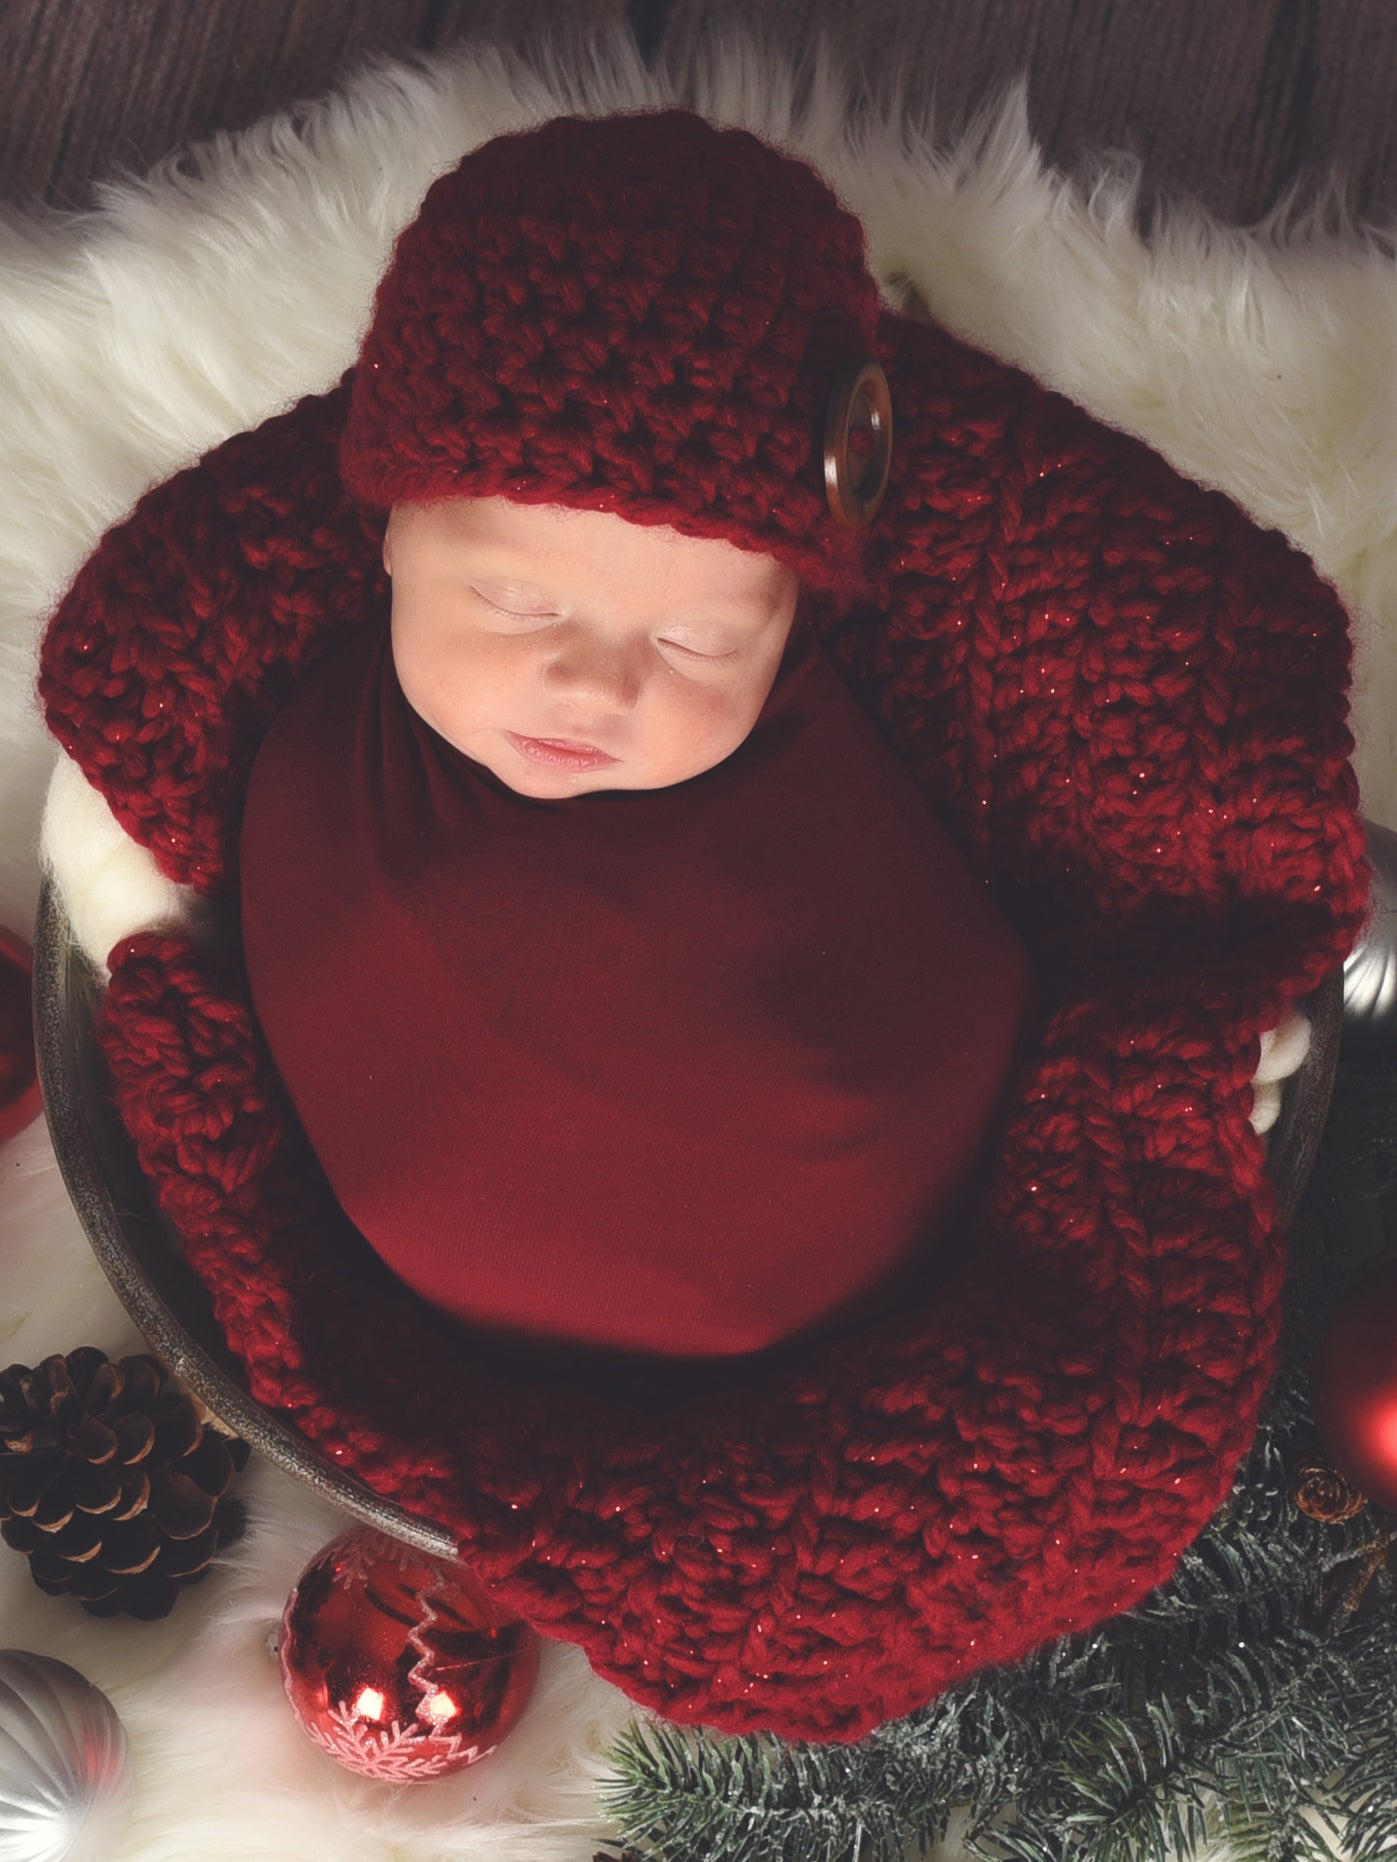 Cranberry Sparkle newborn baby layering bump blanket by Two Seaside Babes